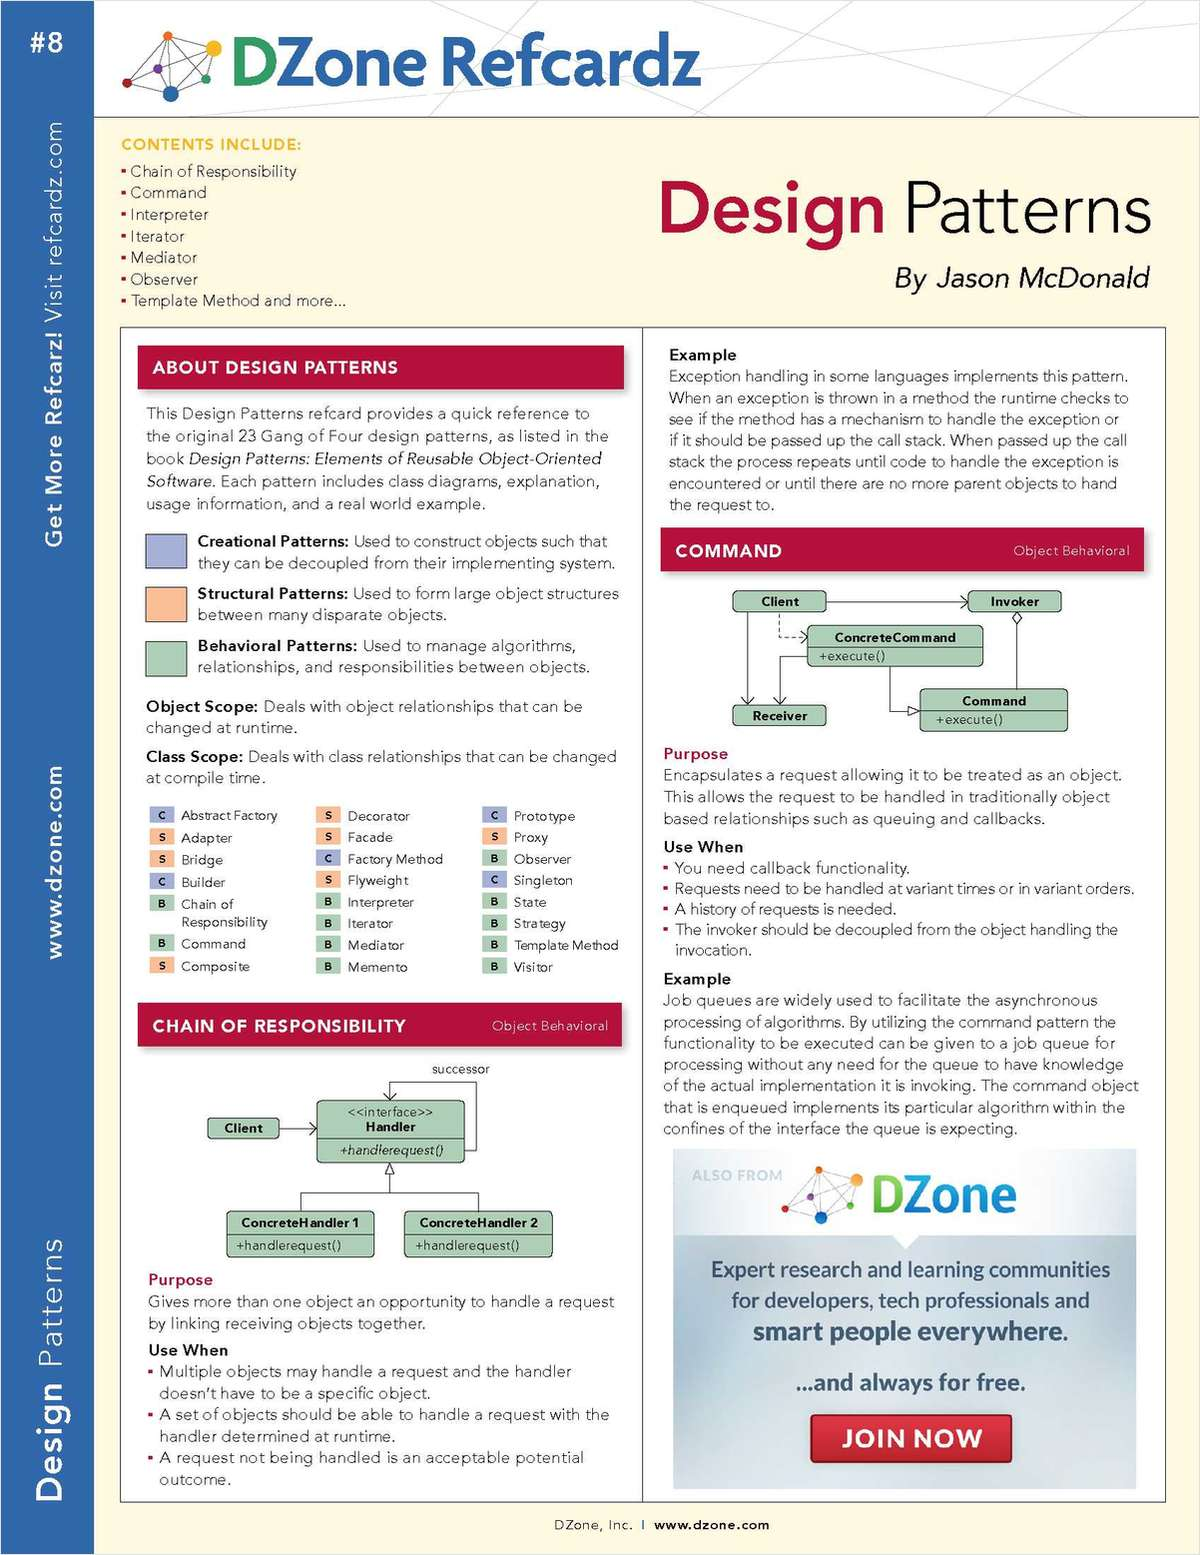 The Essential Design Patterns Cheat Sheet